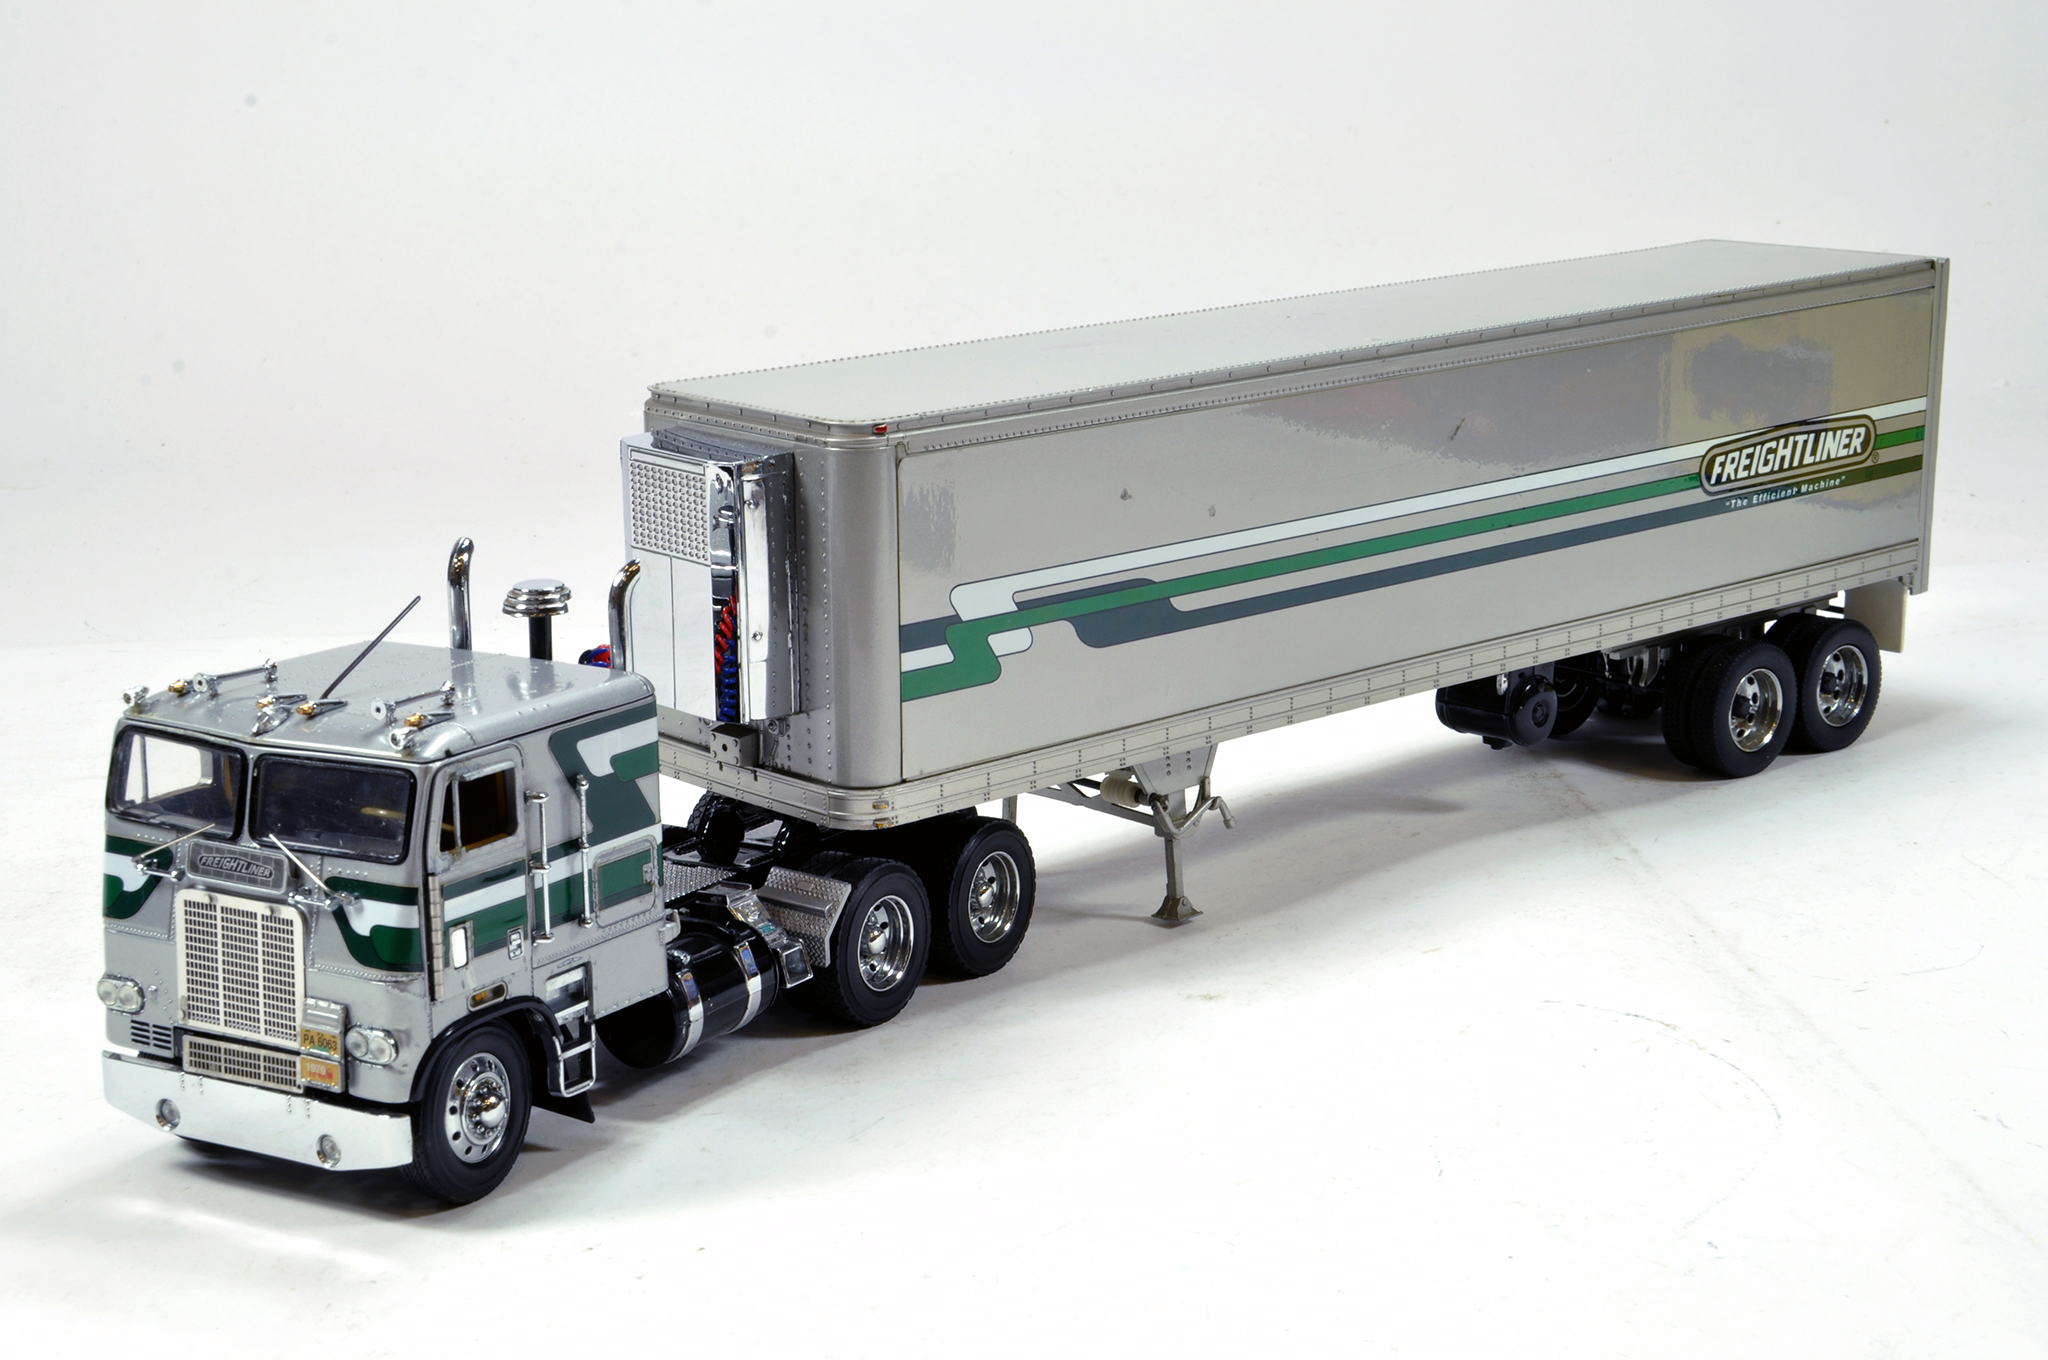 Lot 1572 - Franklin Mint Freightliner Truck and Fridge Trailer Combination. Generally E.